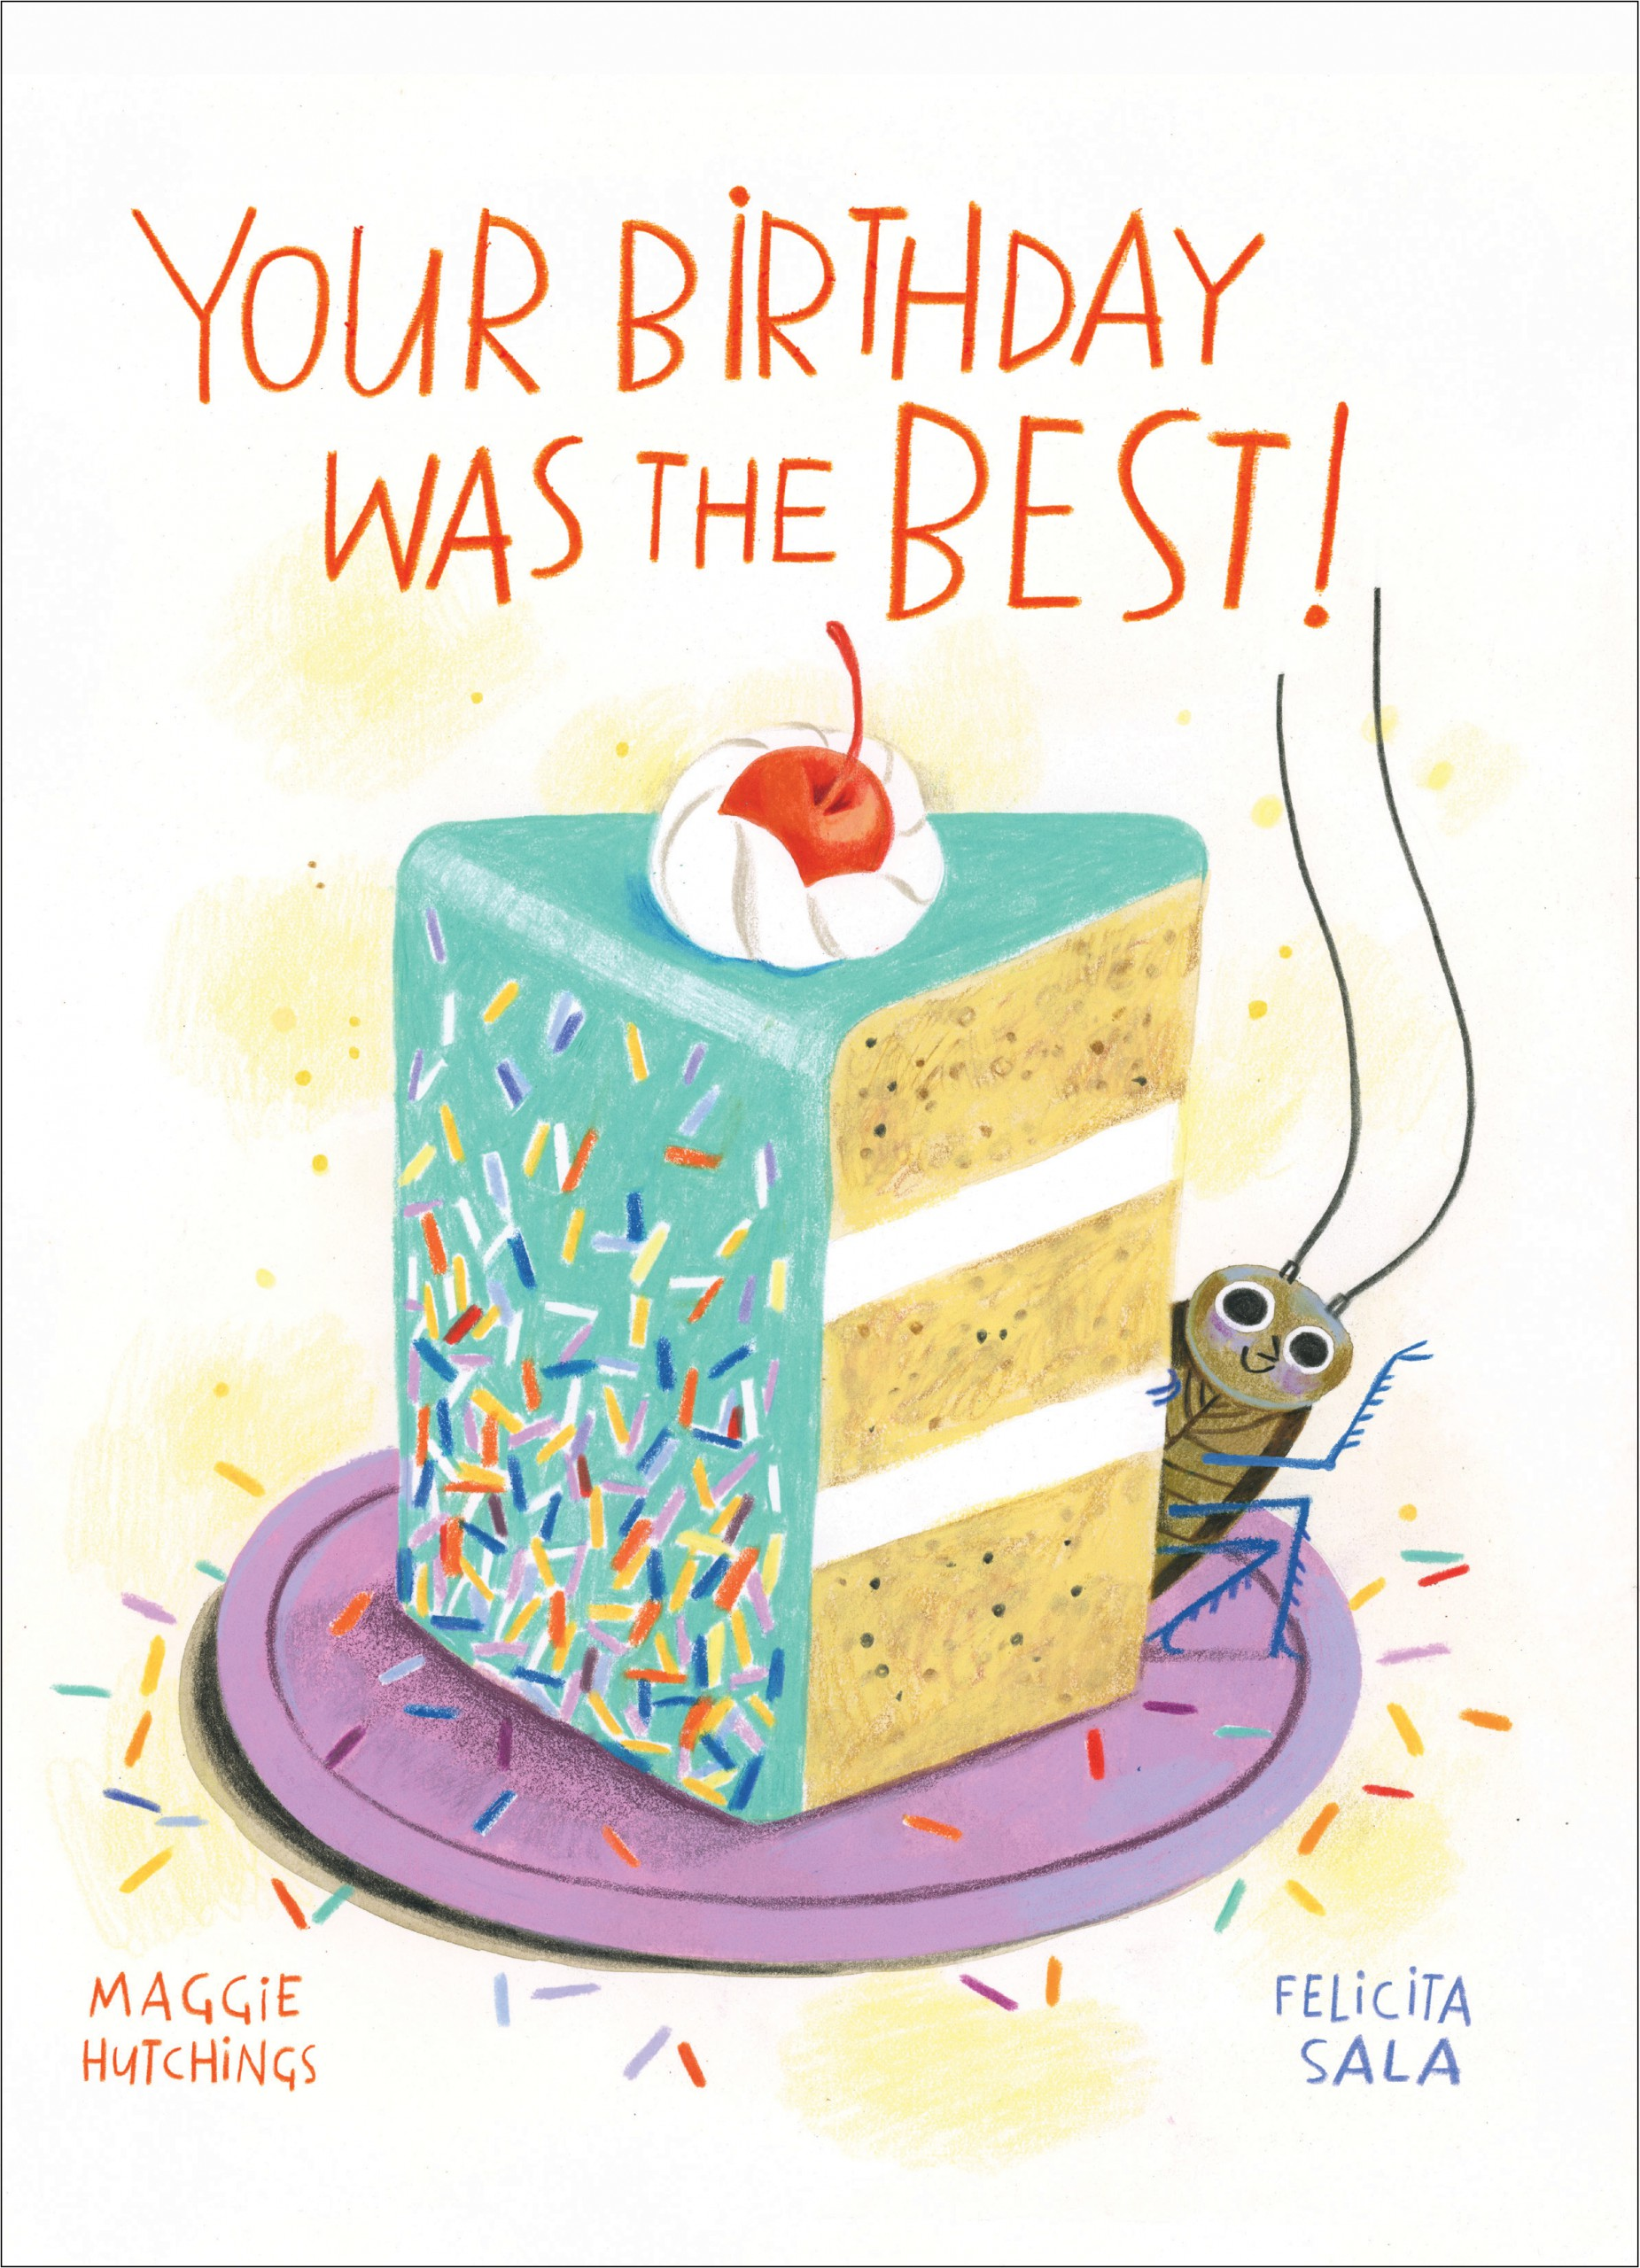 Your Birthday was the BEST! by Maggie Hutchings, illustrated Felicita Sala